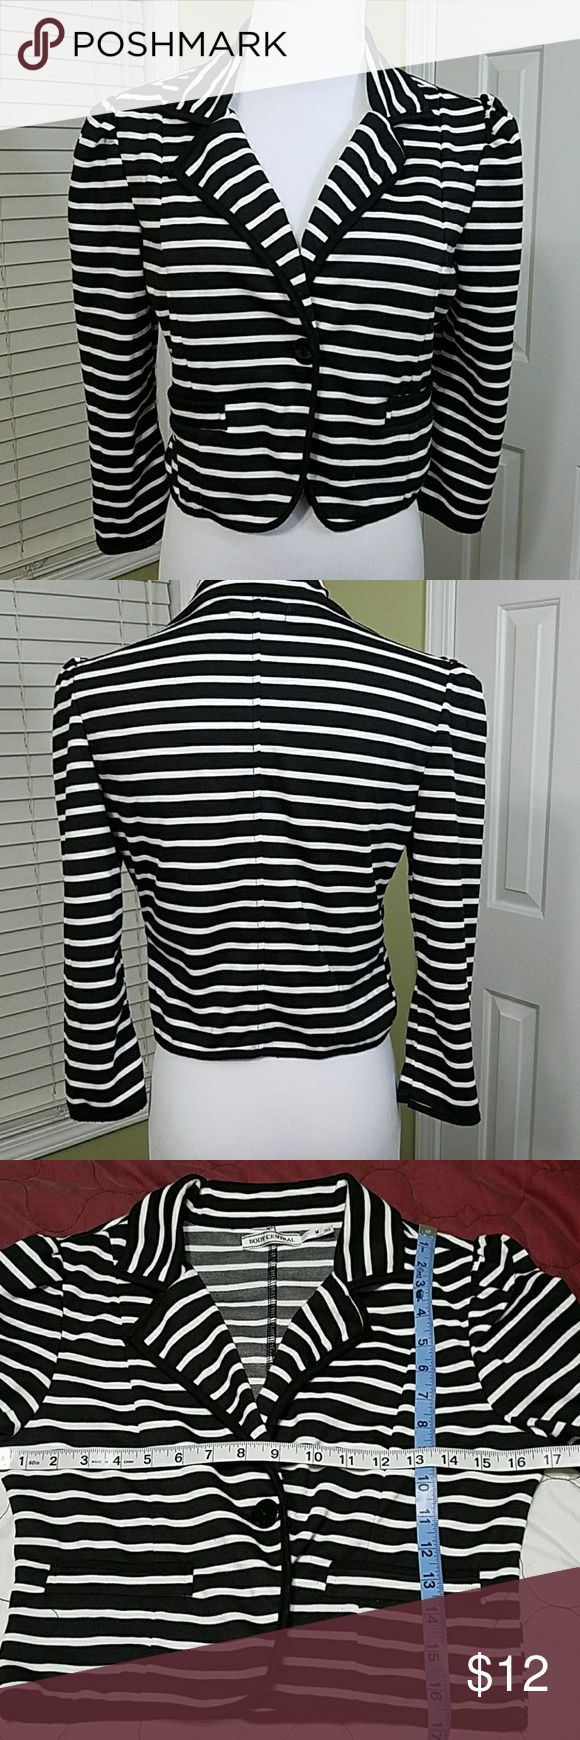 Body Central one button crop coat Body Central one button crop coat.  In good condition.  Length is about 17 inches.  Bust is about 34 inches. Materials shown in pictures. Body Central Jackets & Coats